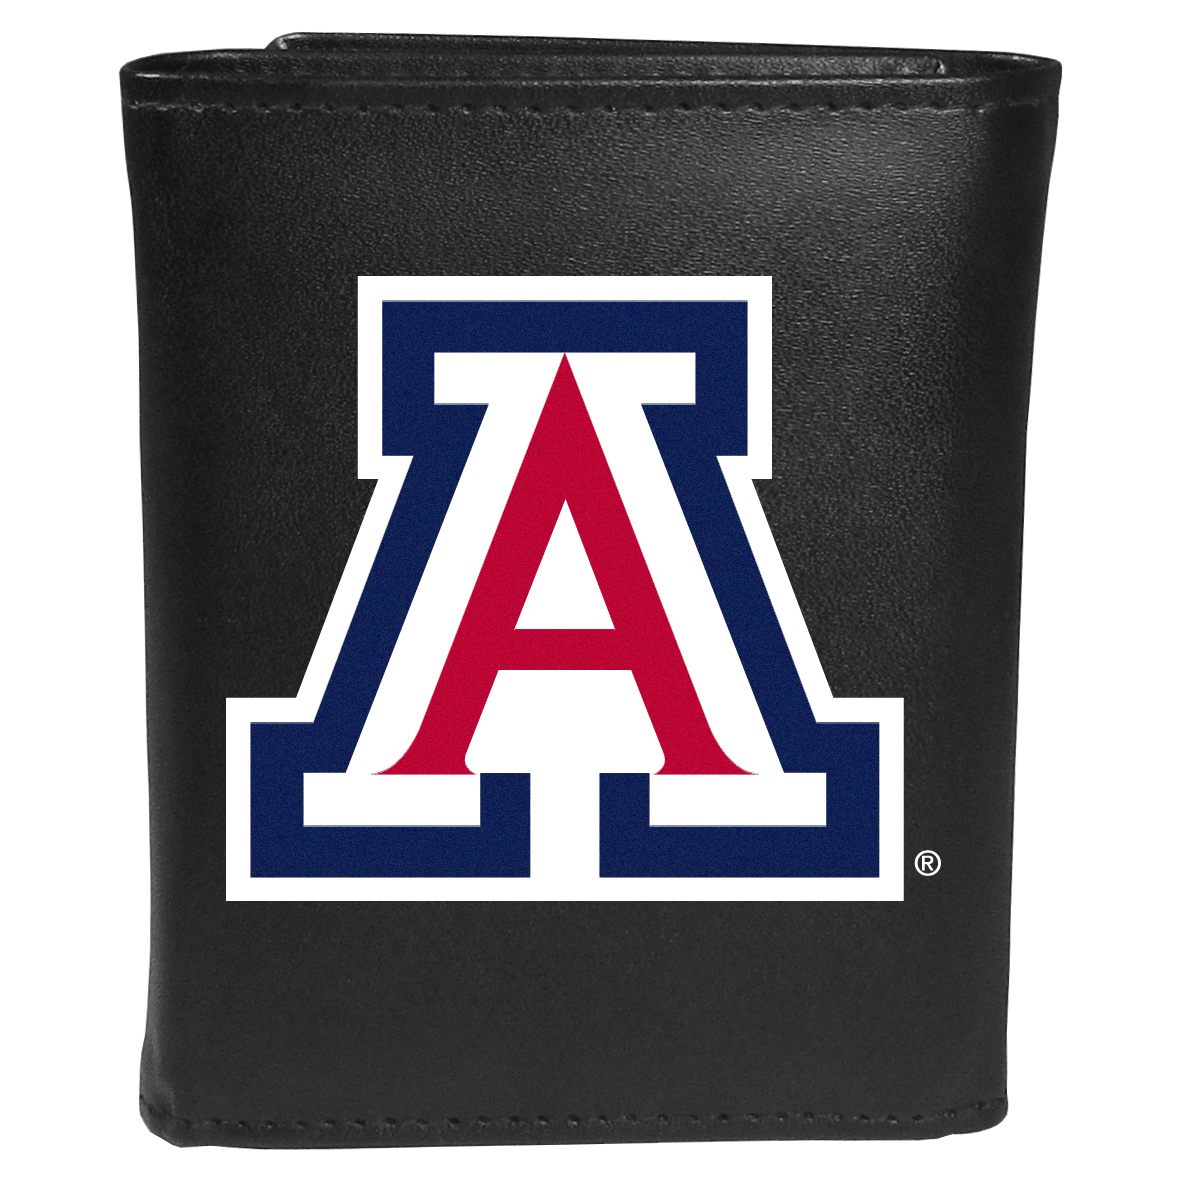 Arizona Wildcats Tri-fold Wallet Large Logo - Sports fans do not have to sacrifice style with this classic tri-fold wallet that sports theArizona Wildcats?extra large logo. This men's fashion accessory has a leather grain look and expert craftmanship for a quality wallet at a great price. The wallet features inner credit card slots, windowed ID slot and a large billfold pocket. The front of the wallet features an extra large printed team logo.